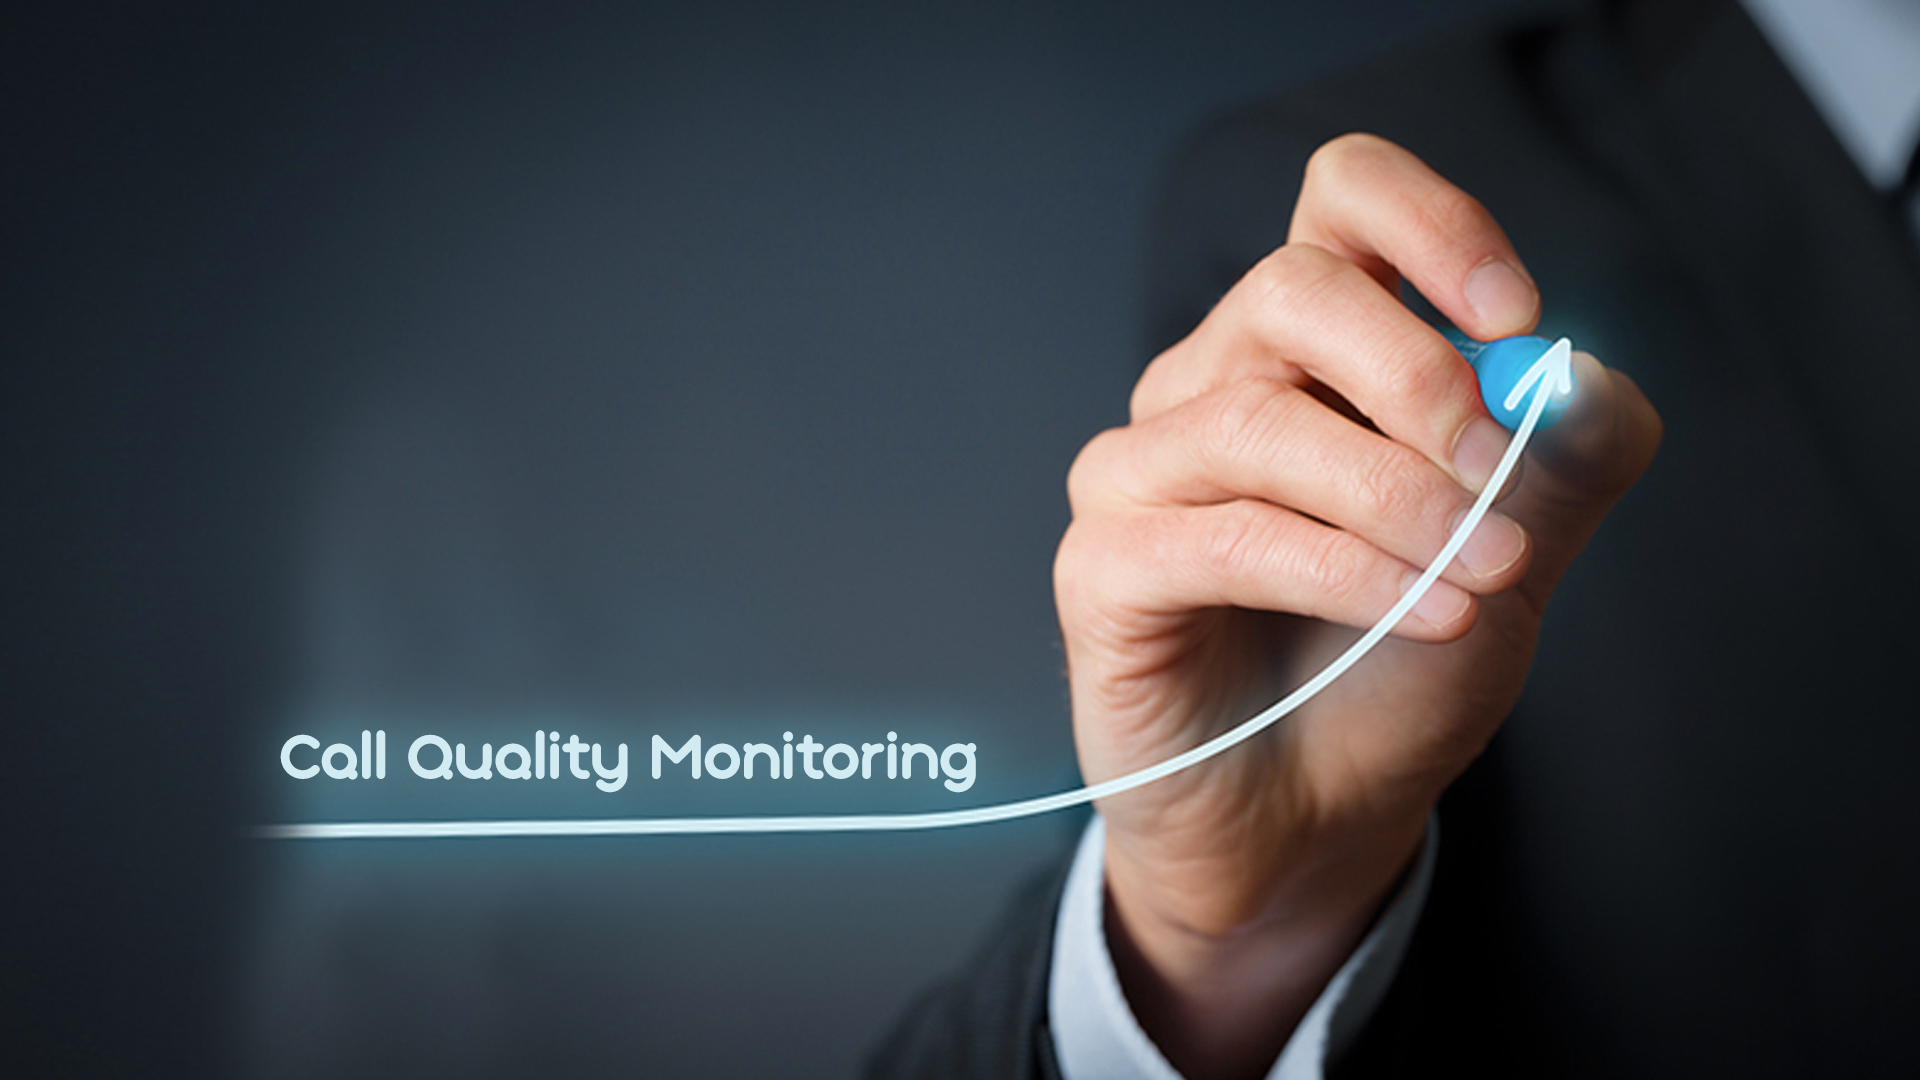 Tips for Effective Call Quality Monitoring